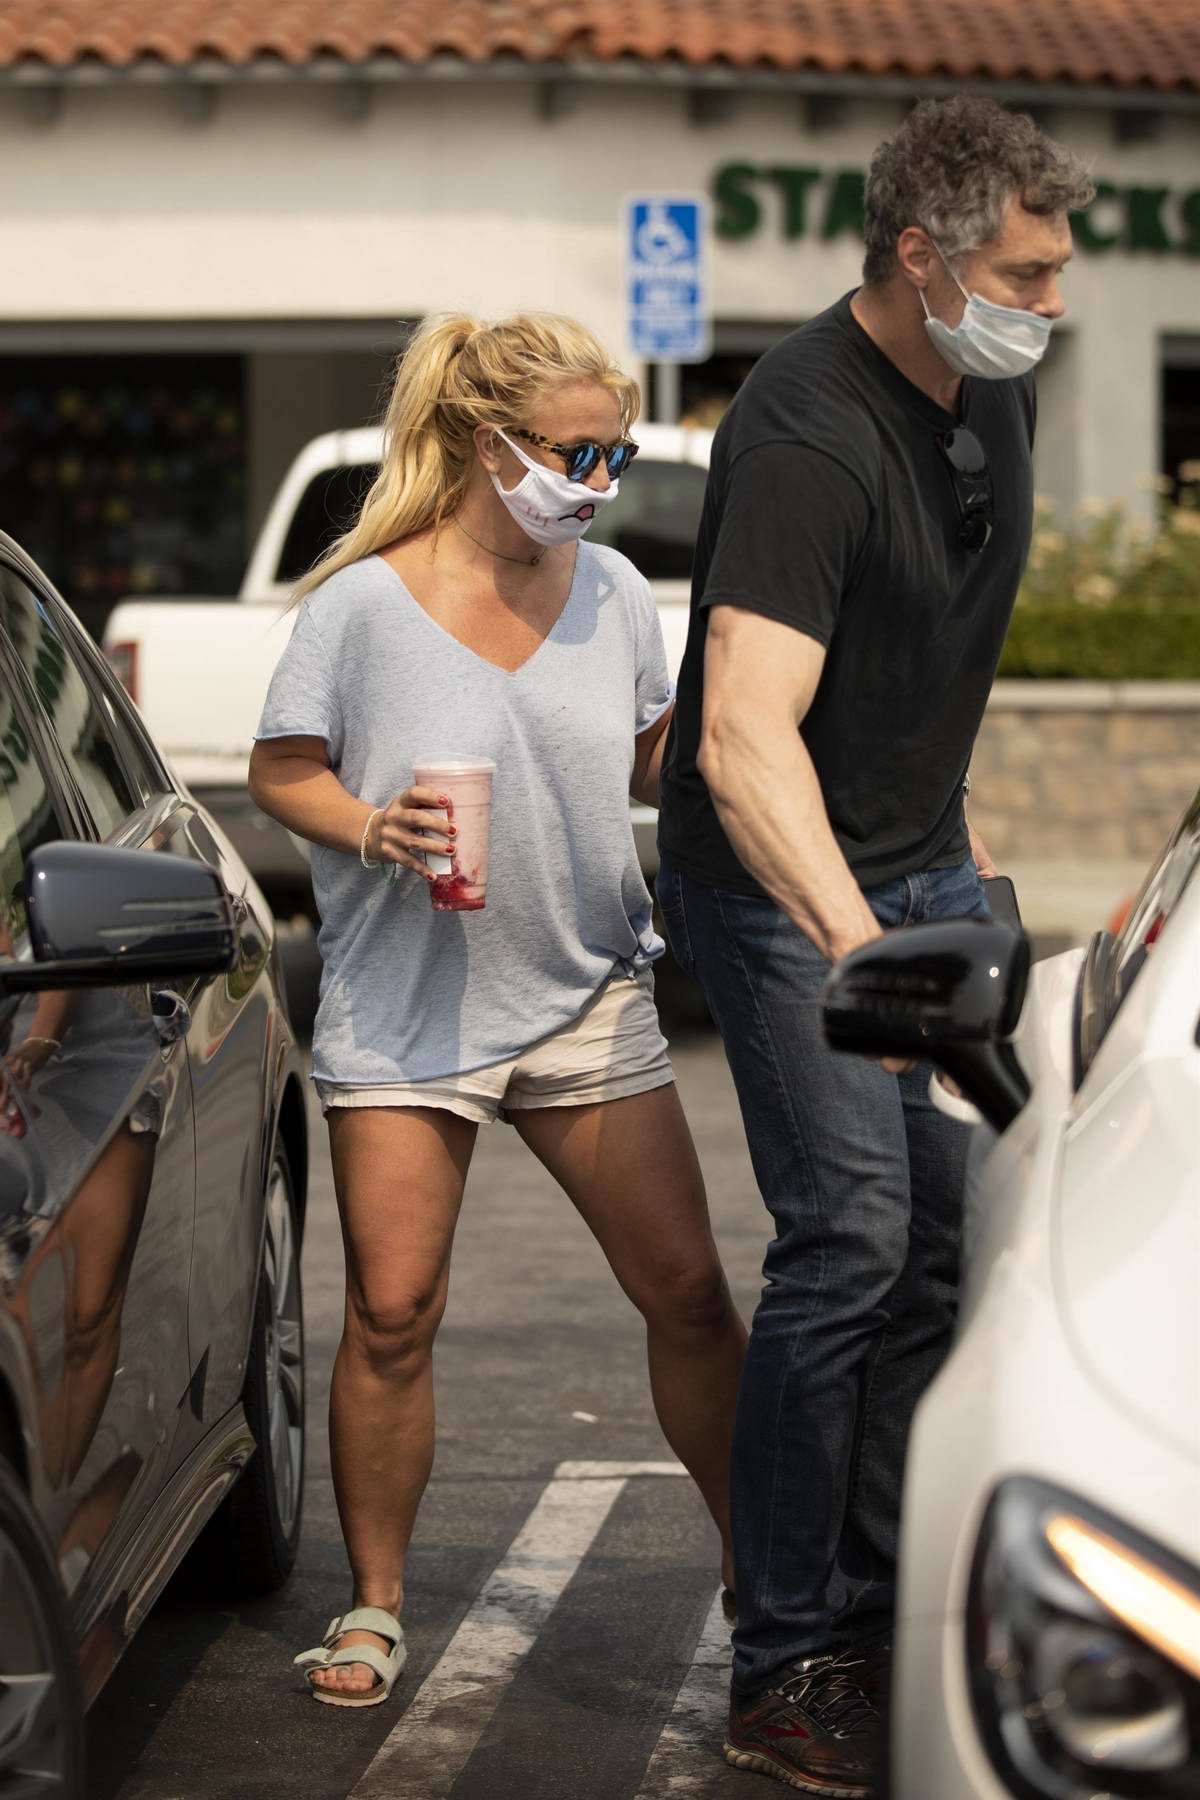 Britney Spears keeps it casual in a grey top and shorts while making a stop at a Starbucks in Calabasas, California